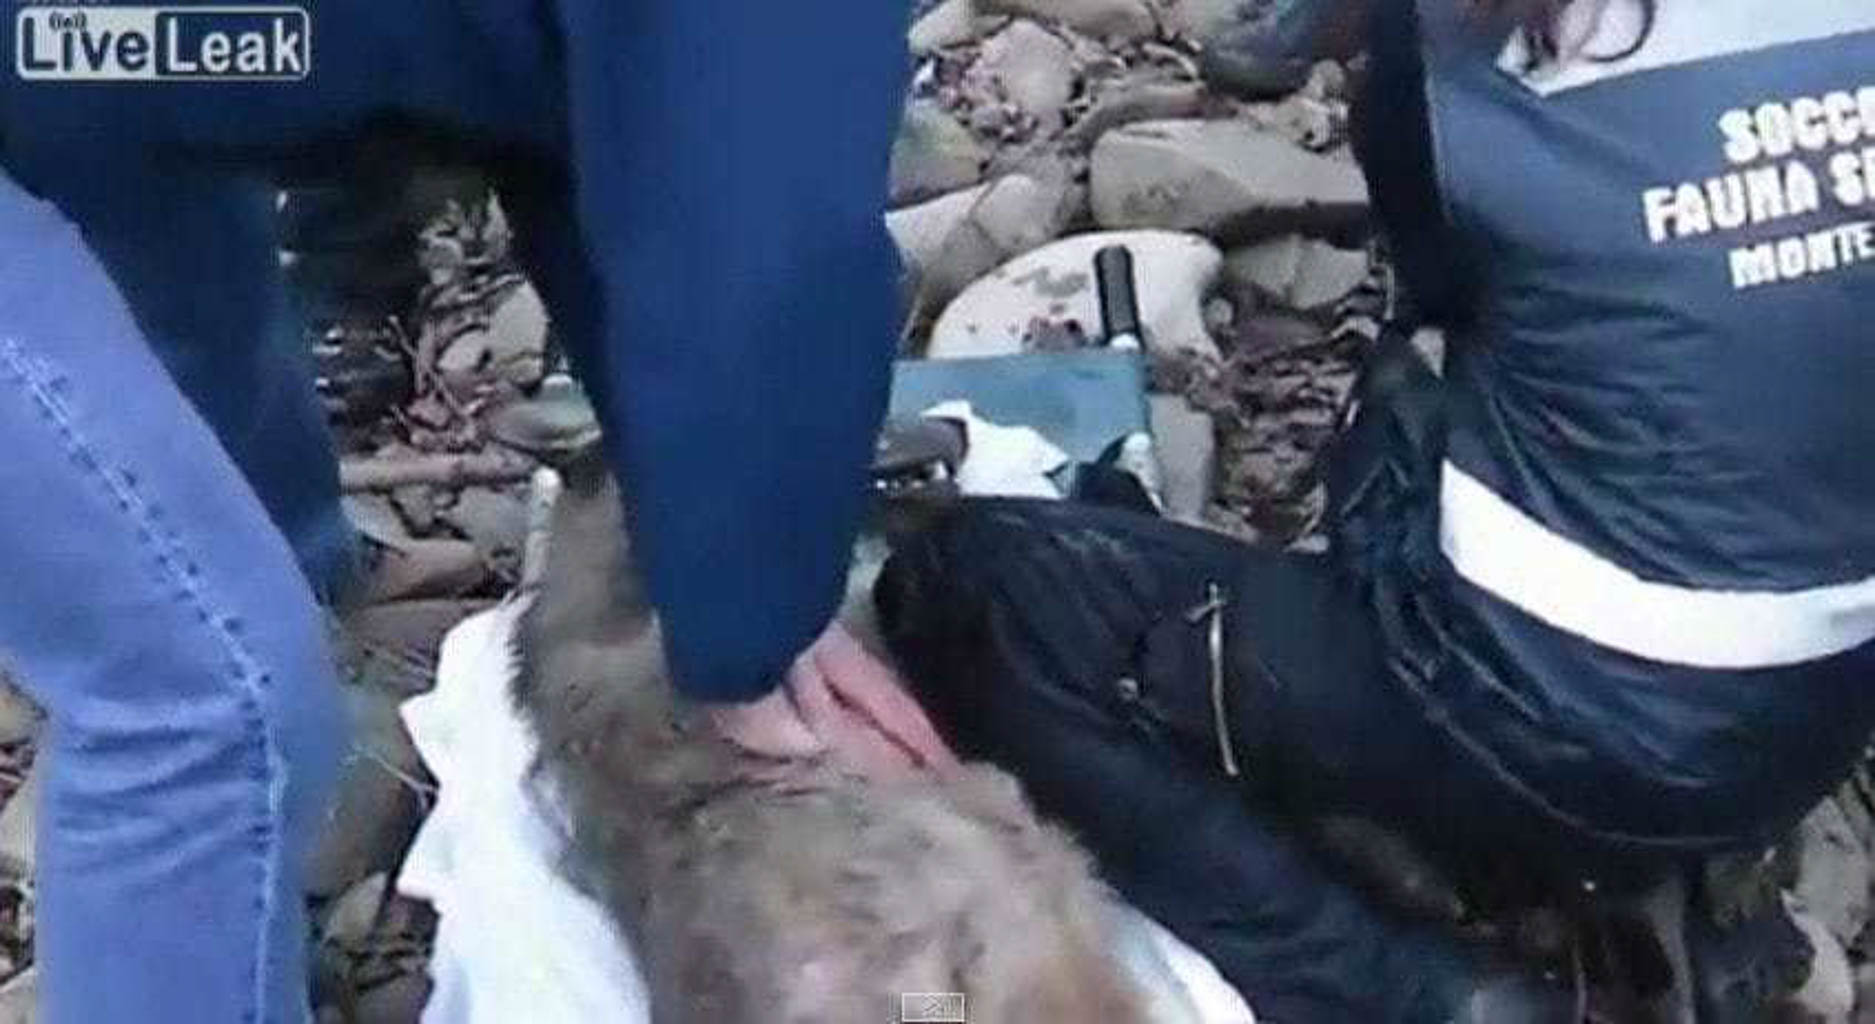 The story of Sisyphos: Injured wolf rescued in Italy